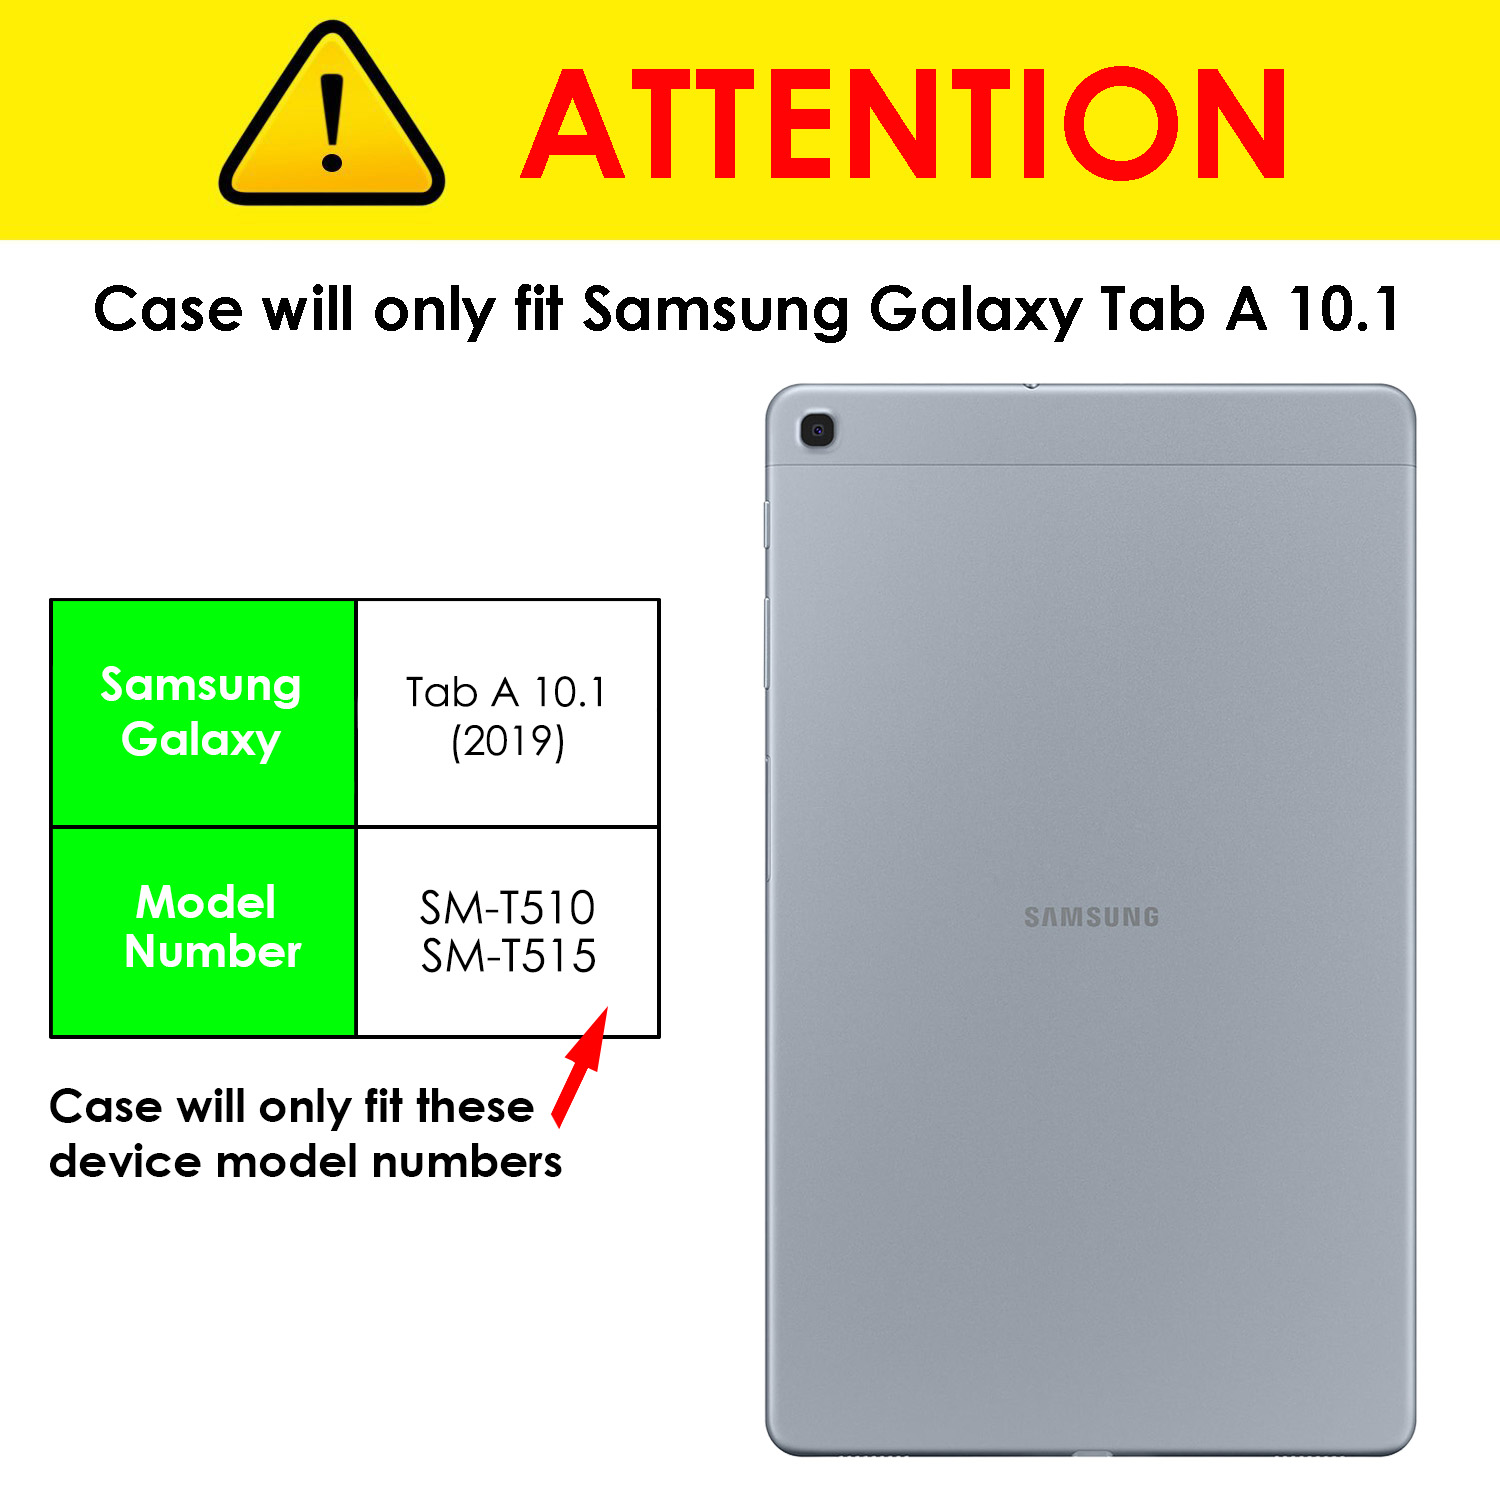 miniature 108 - Samsung Galaxy Tab A 10.1 2019 Étui Magnétique Protection & Support + Stylet